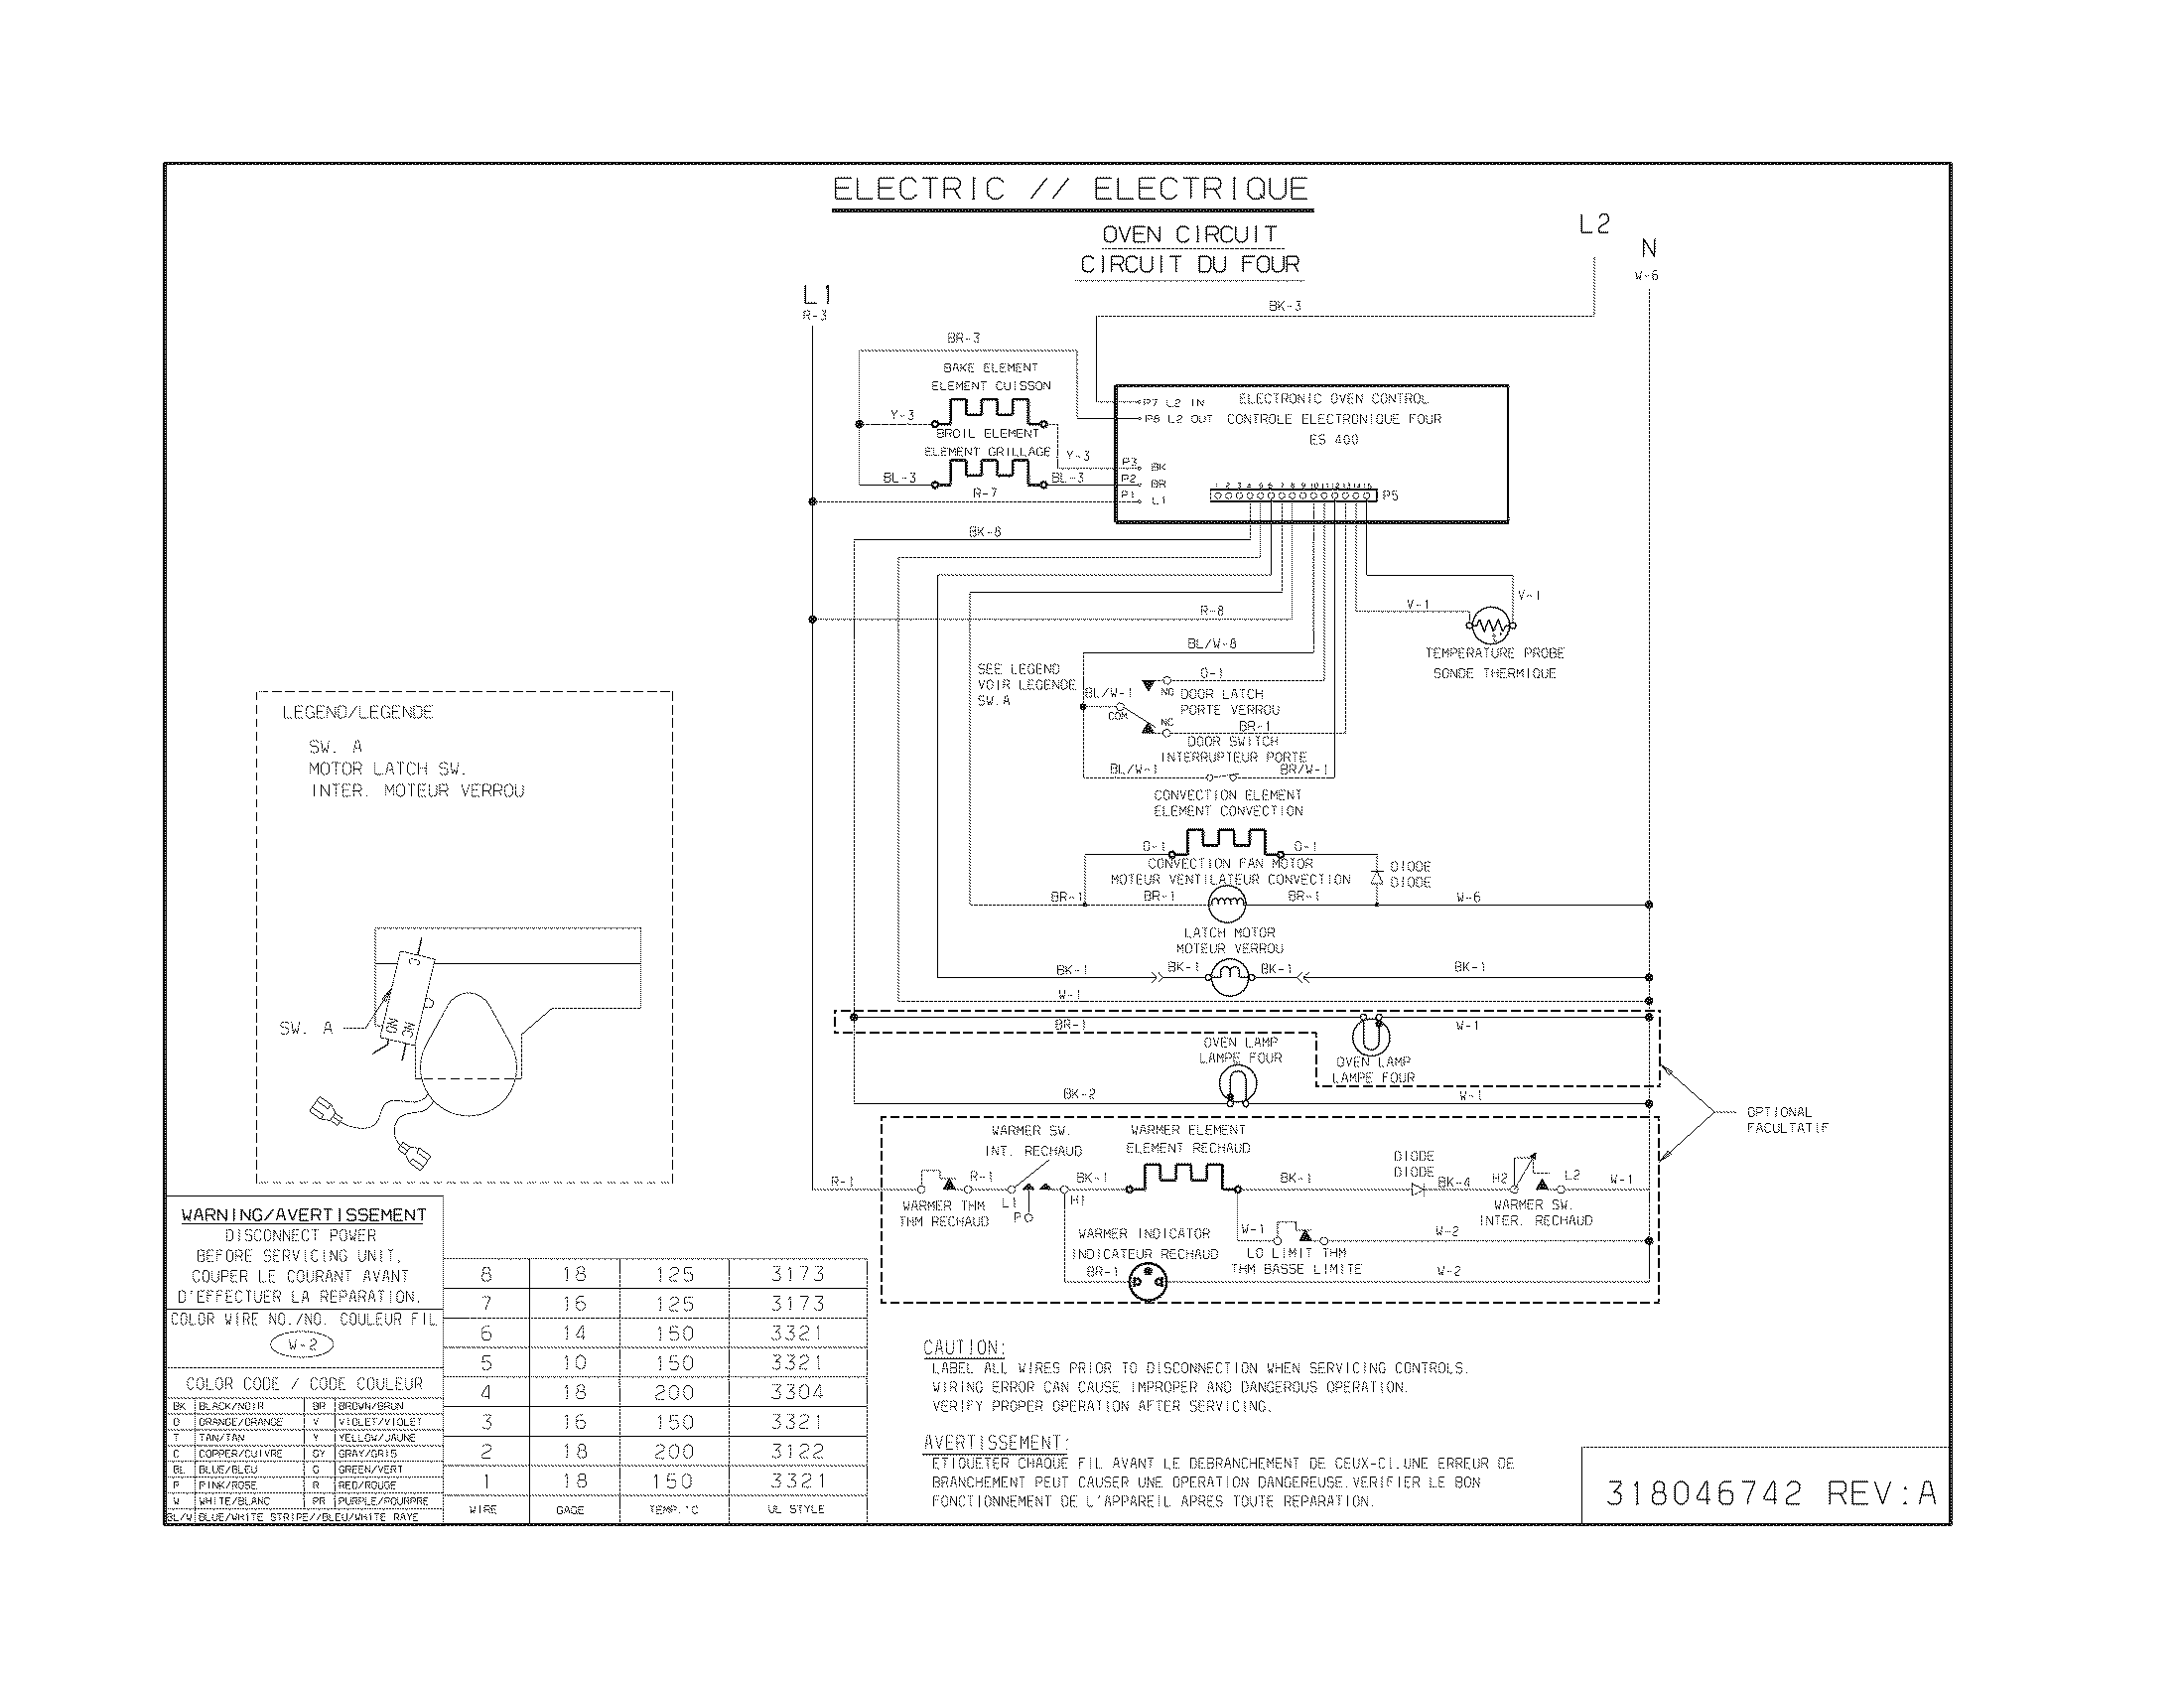 wiring diagram parts?resize=665%2C514&ssl=1 oven wiring instructions wiring diagram  at readyjetset.co